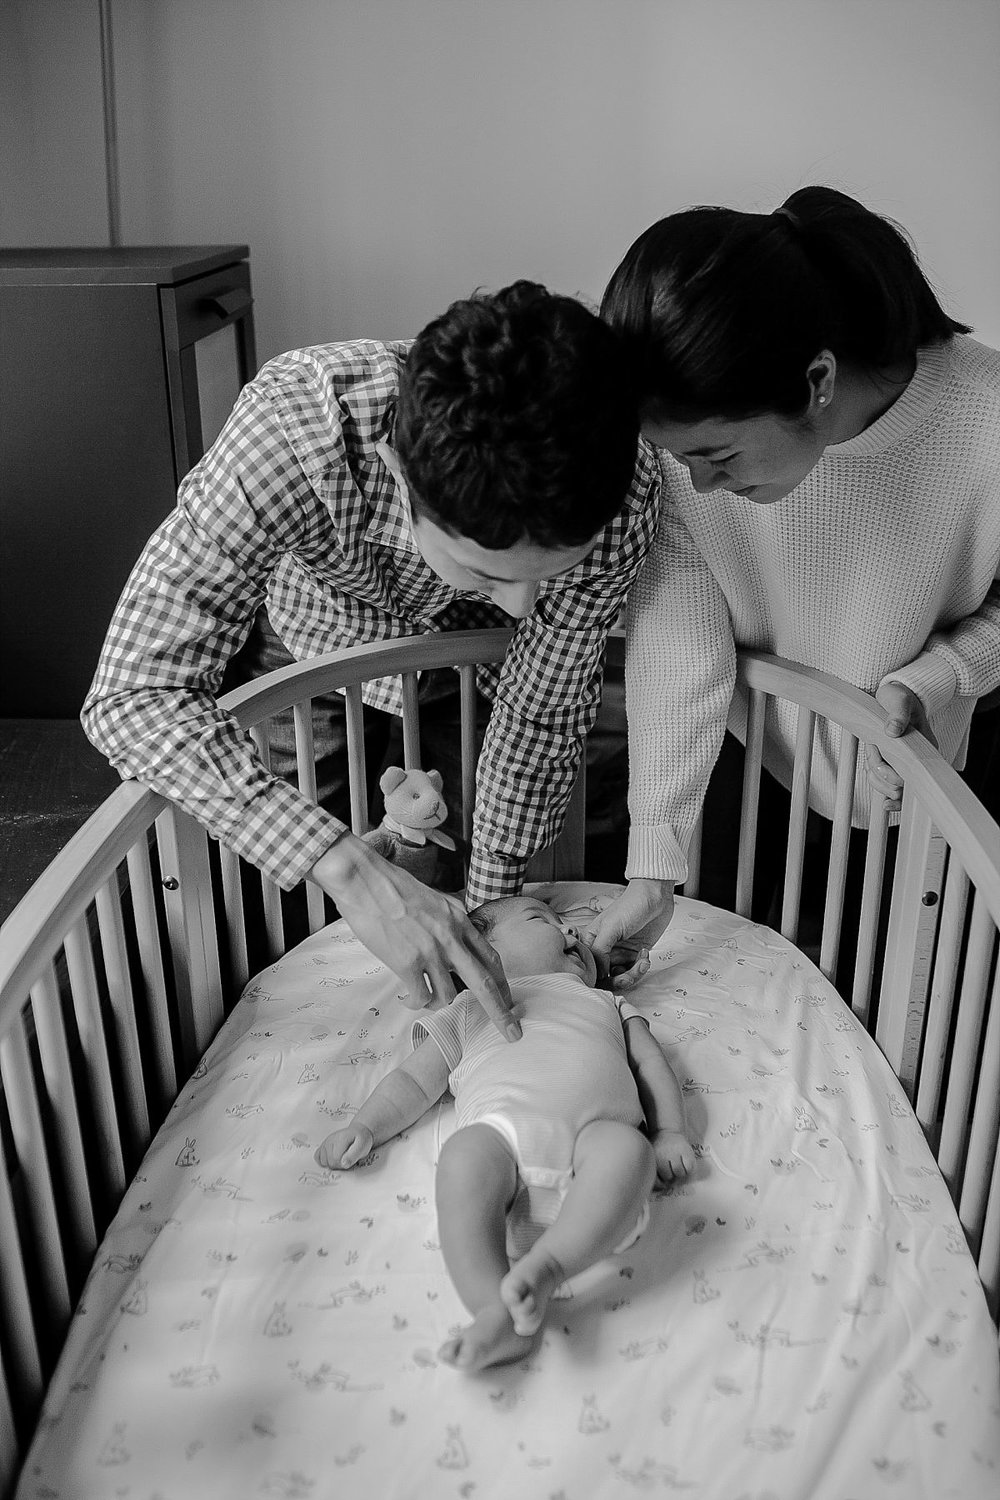 photo of mom and dad playing with newborn son as he lays in his crib. photo by nyc newborn photographer krystil mcdowall